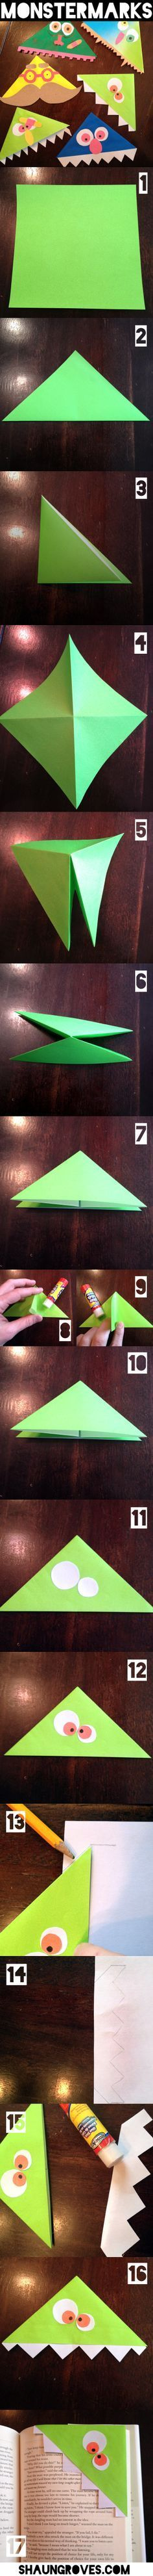 Monstermarks – Kid Craft Tutorial. Easy bookmark craft for kids (and dads).